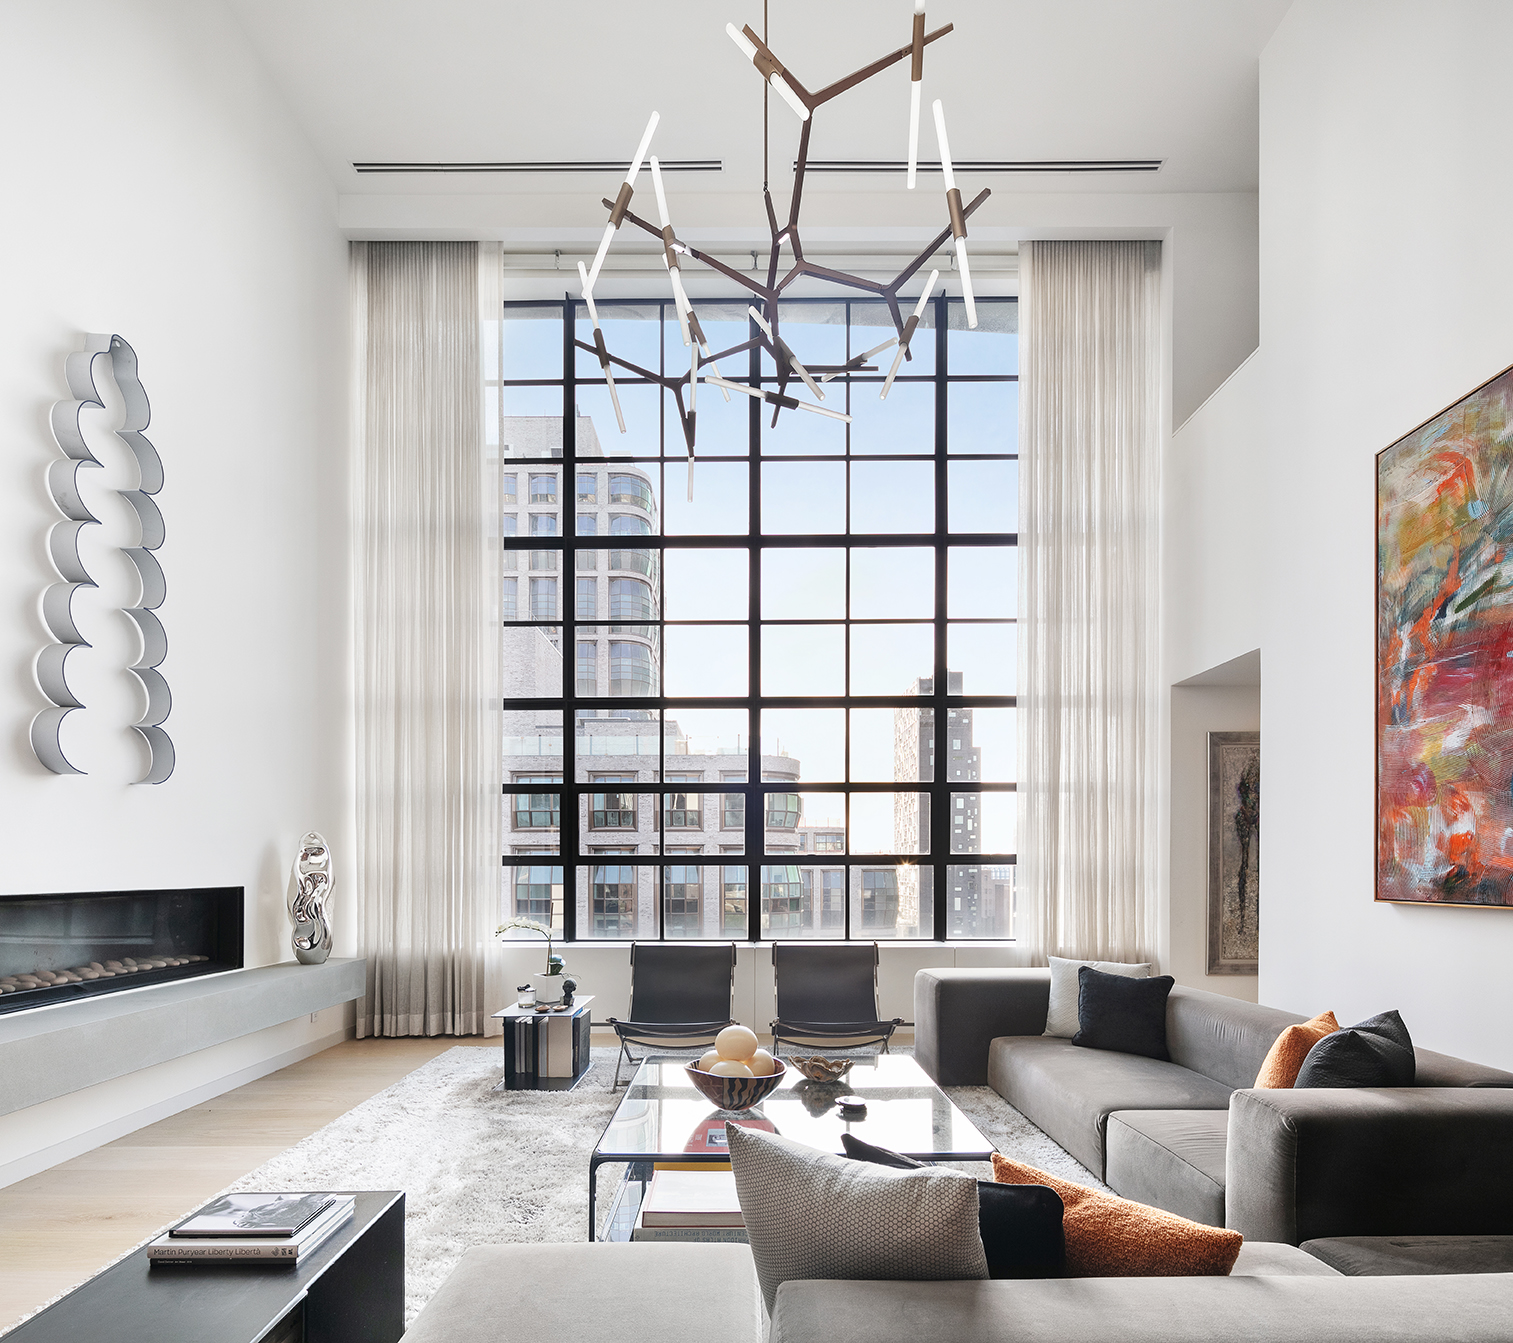 primary photo for 456 West 19th Street PH-J, New York, NY 10011, US